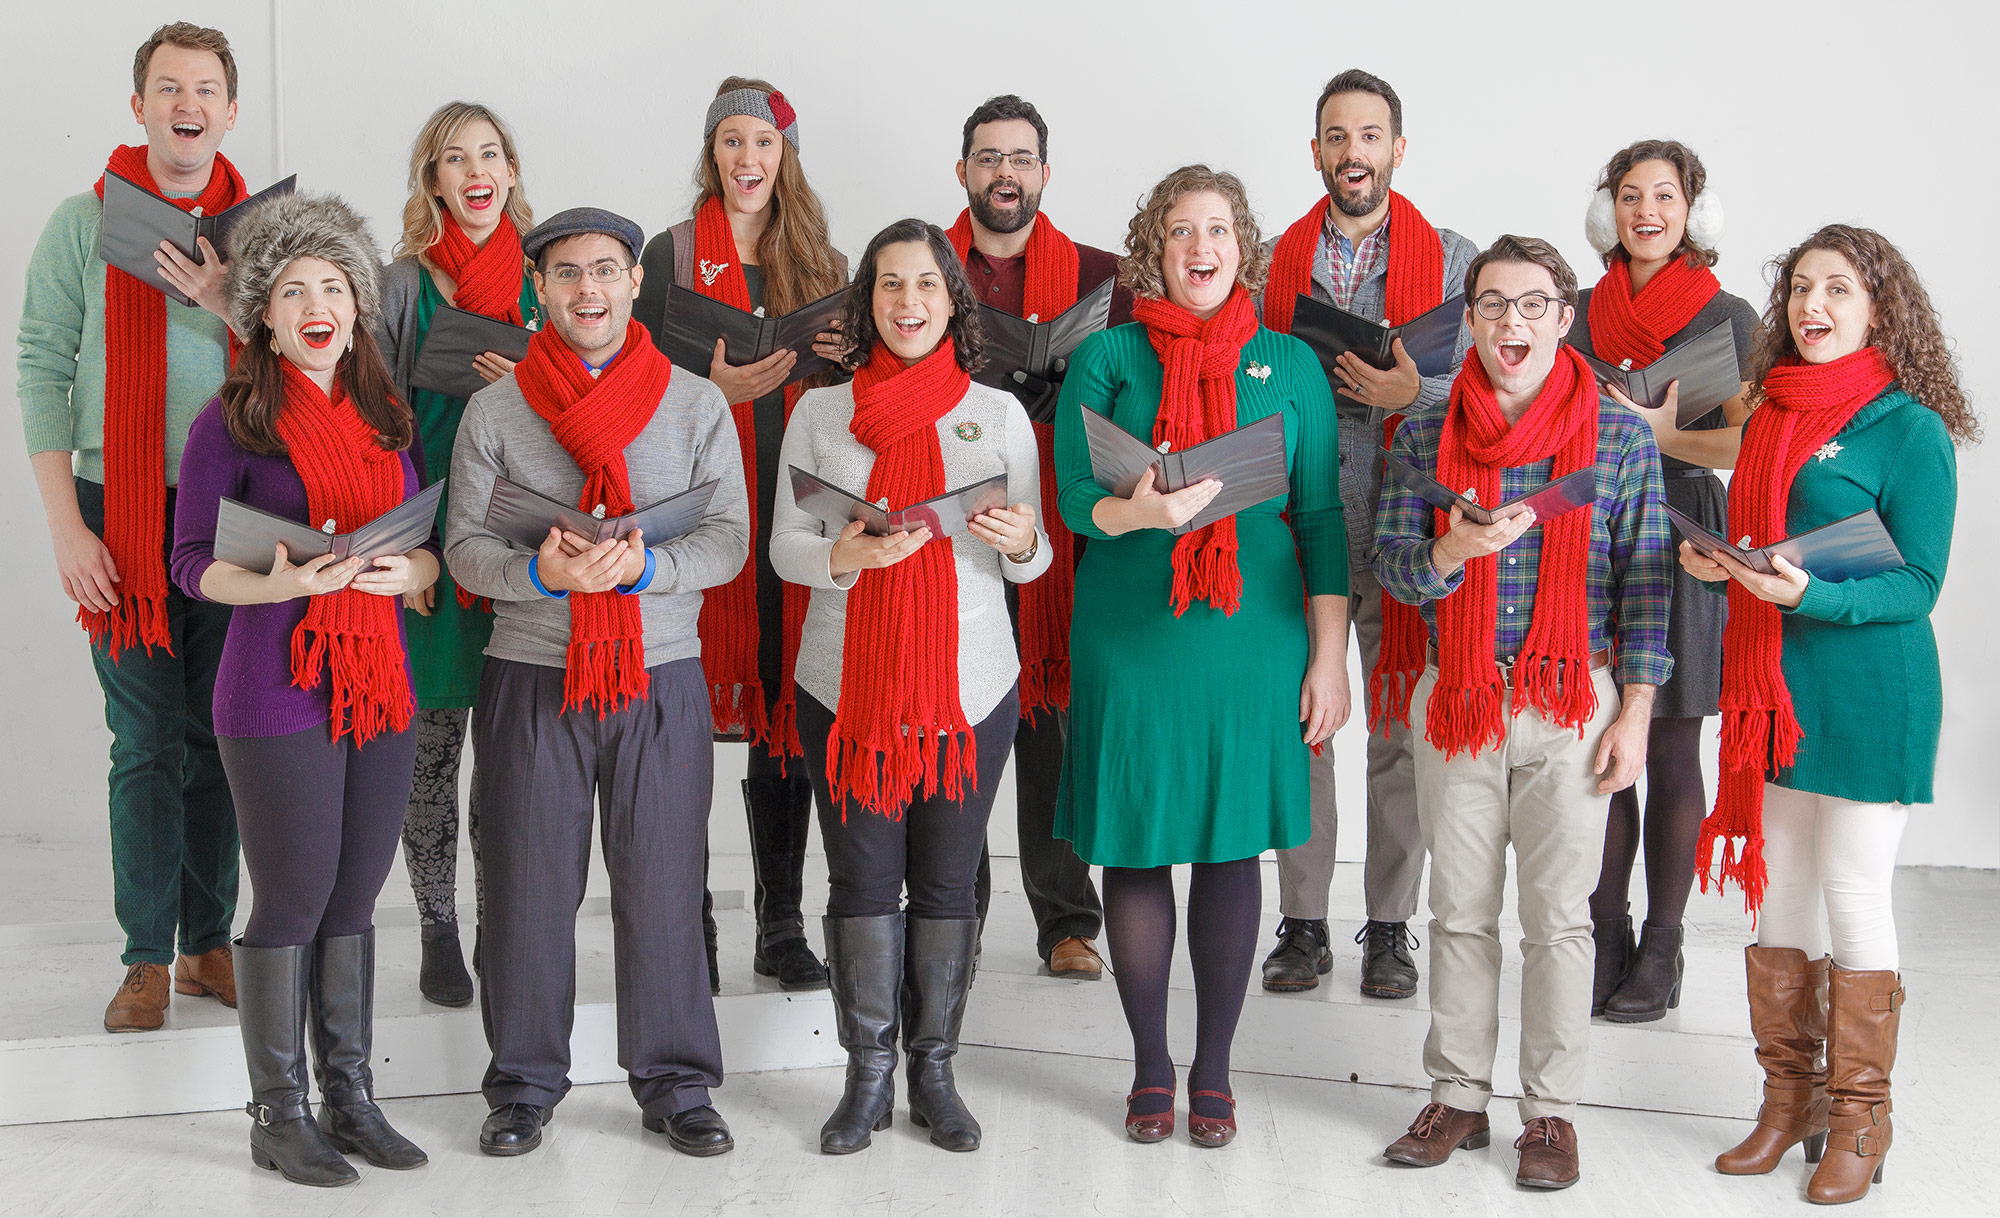 Have you already learned the carols? The most interesting facts about Christmas carols